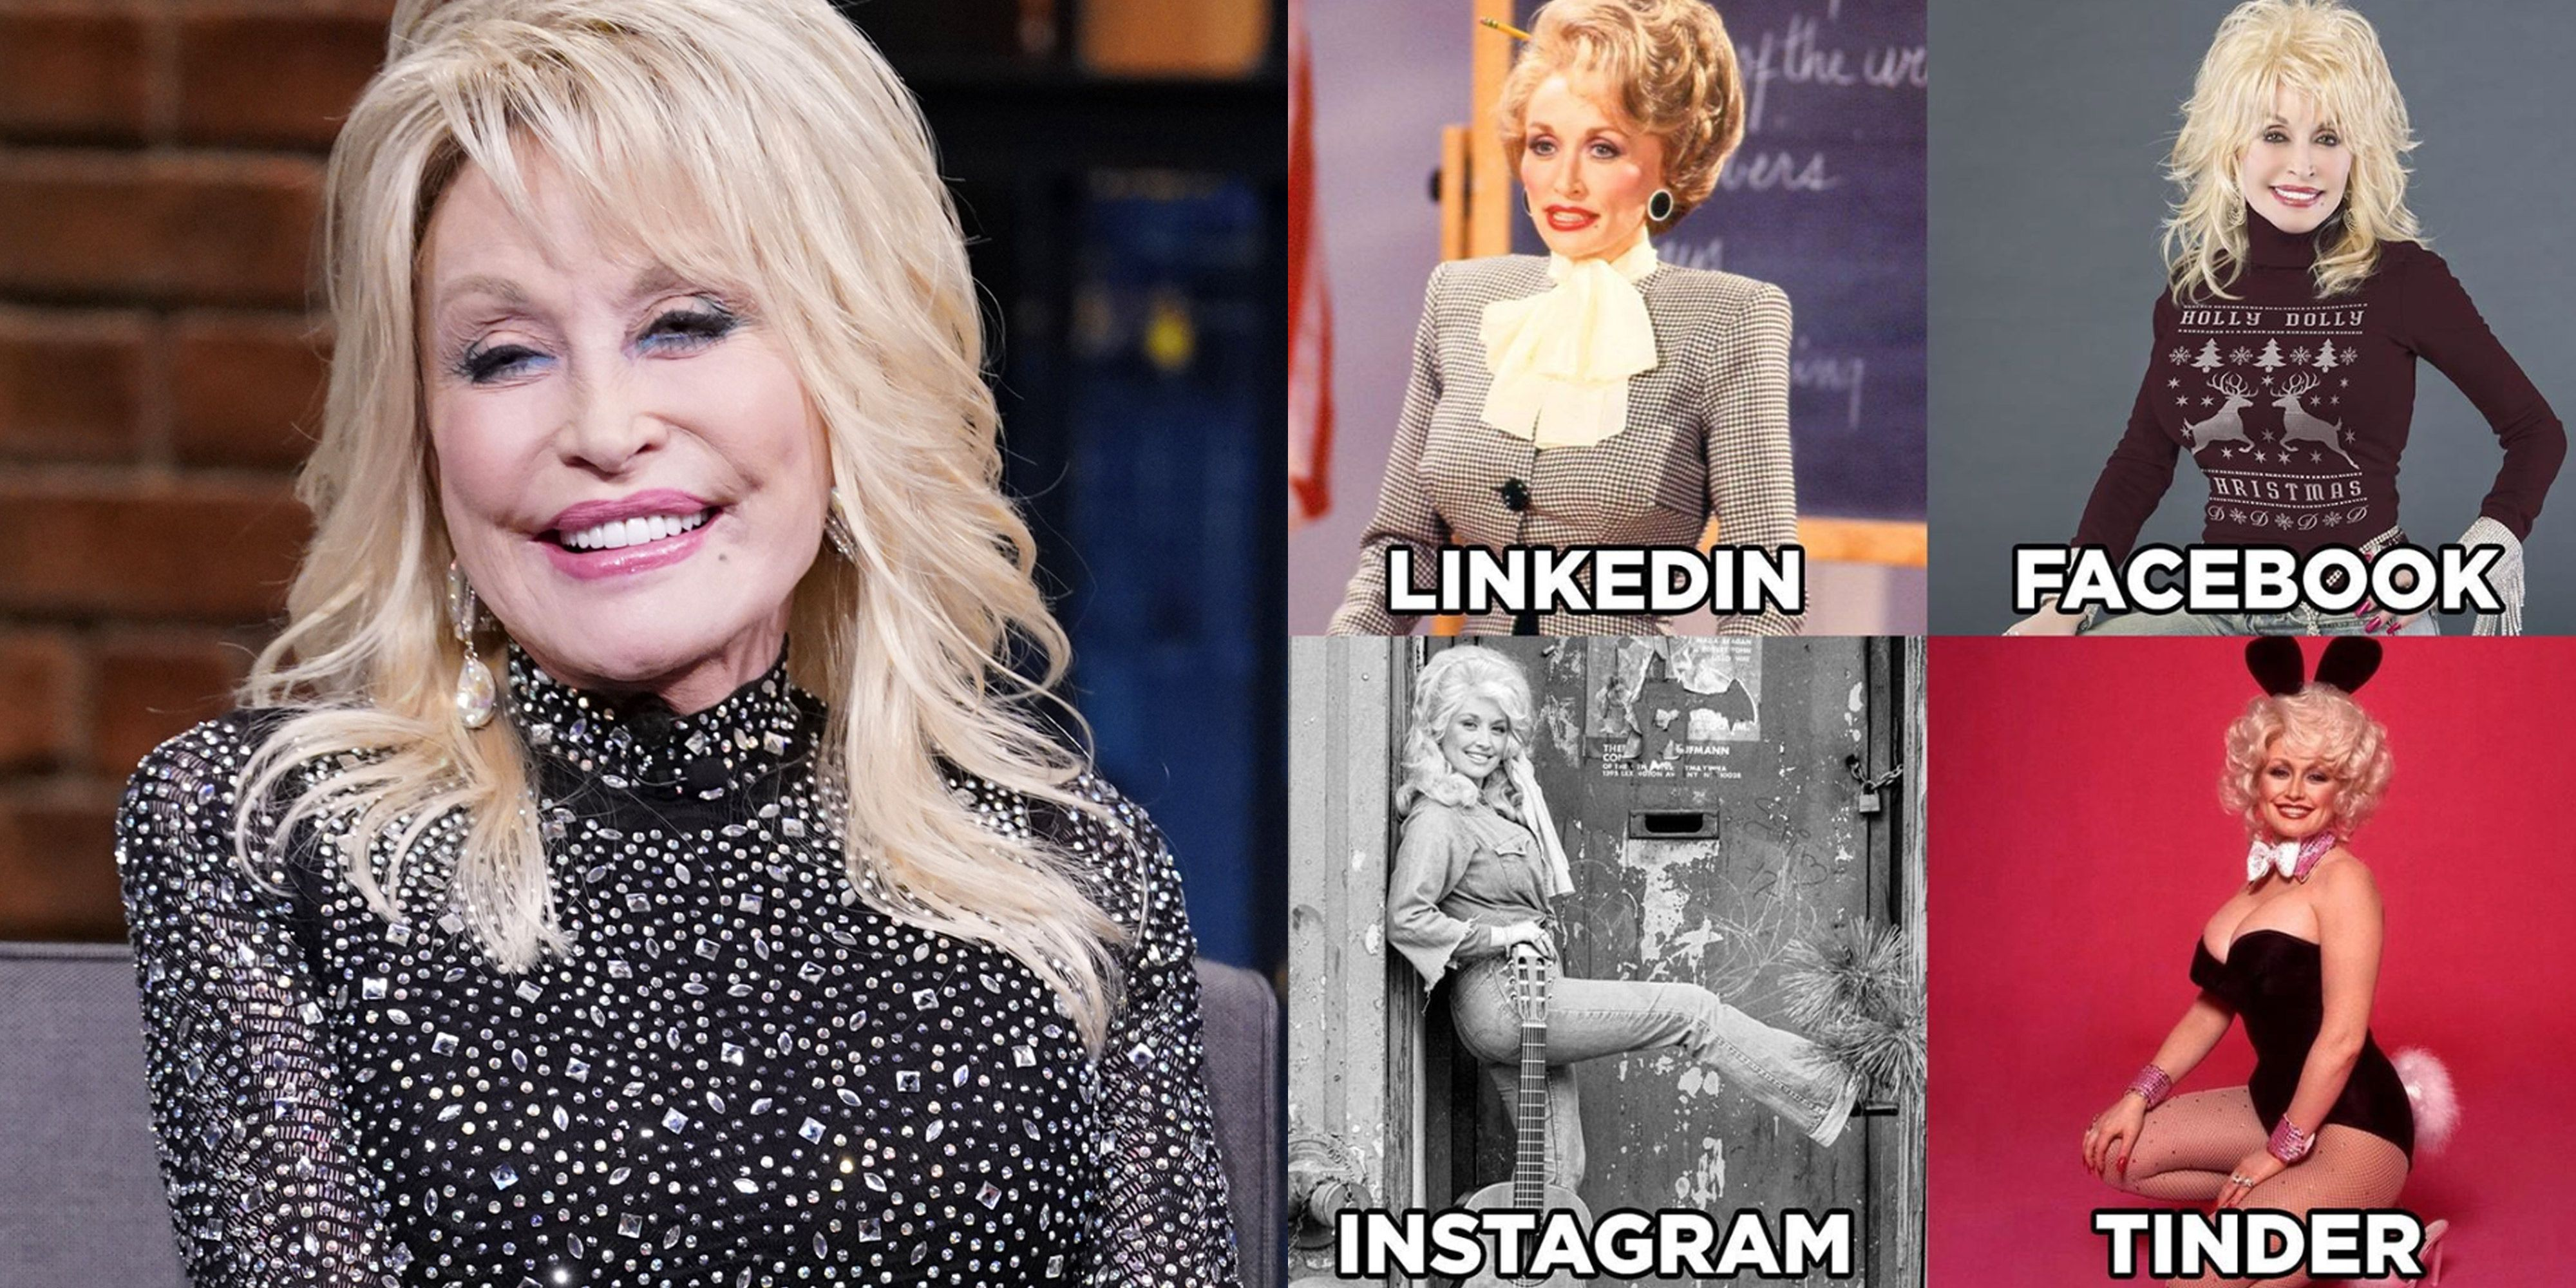 The Linkedin Facebook Instagram Tinder Meme Comes From Dolly